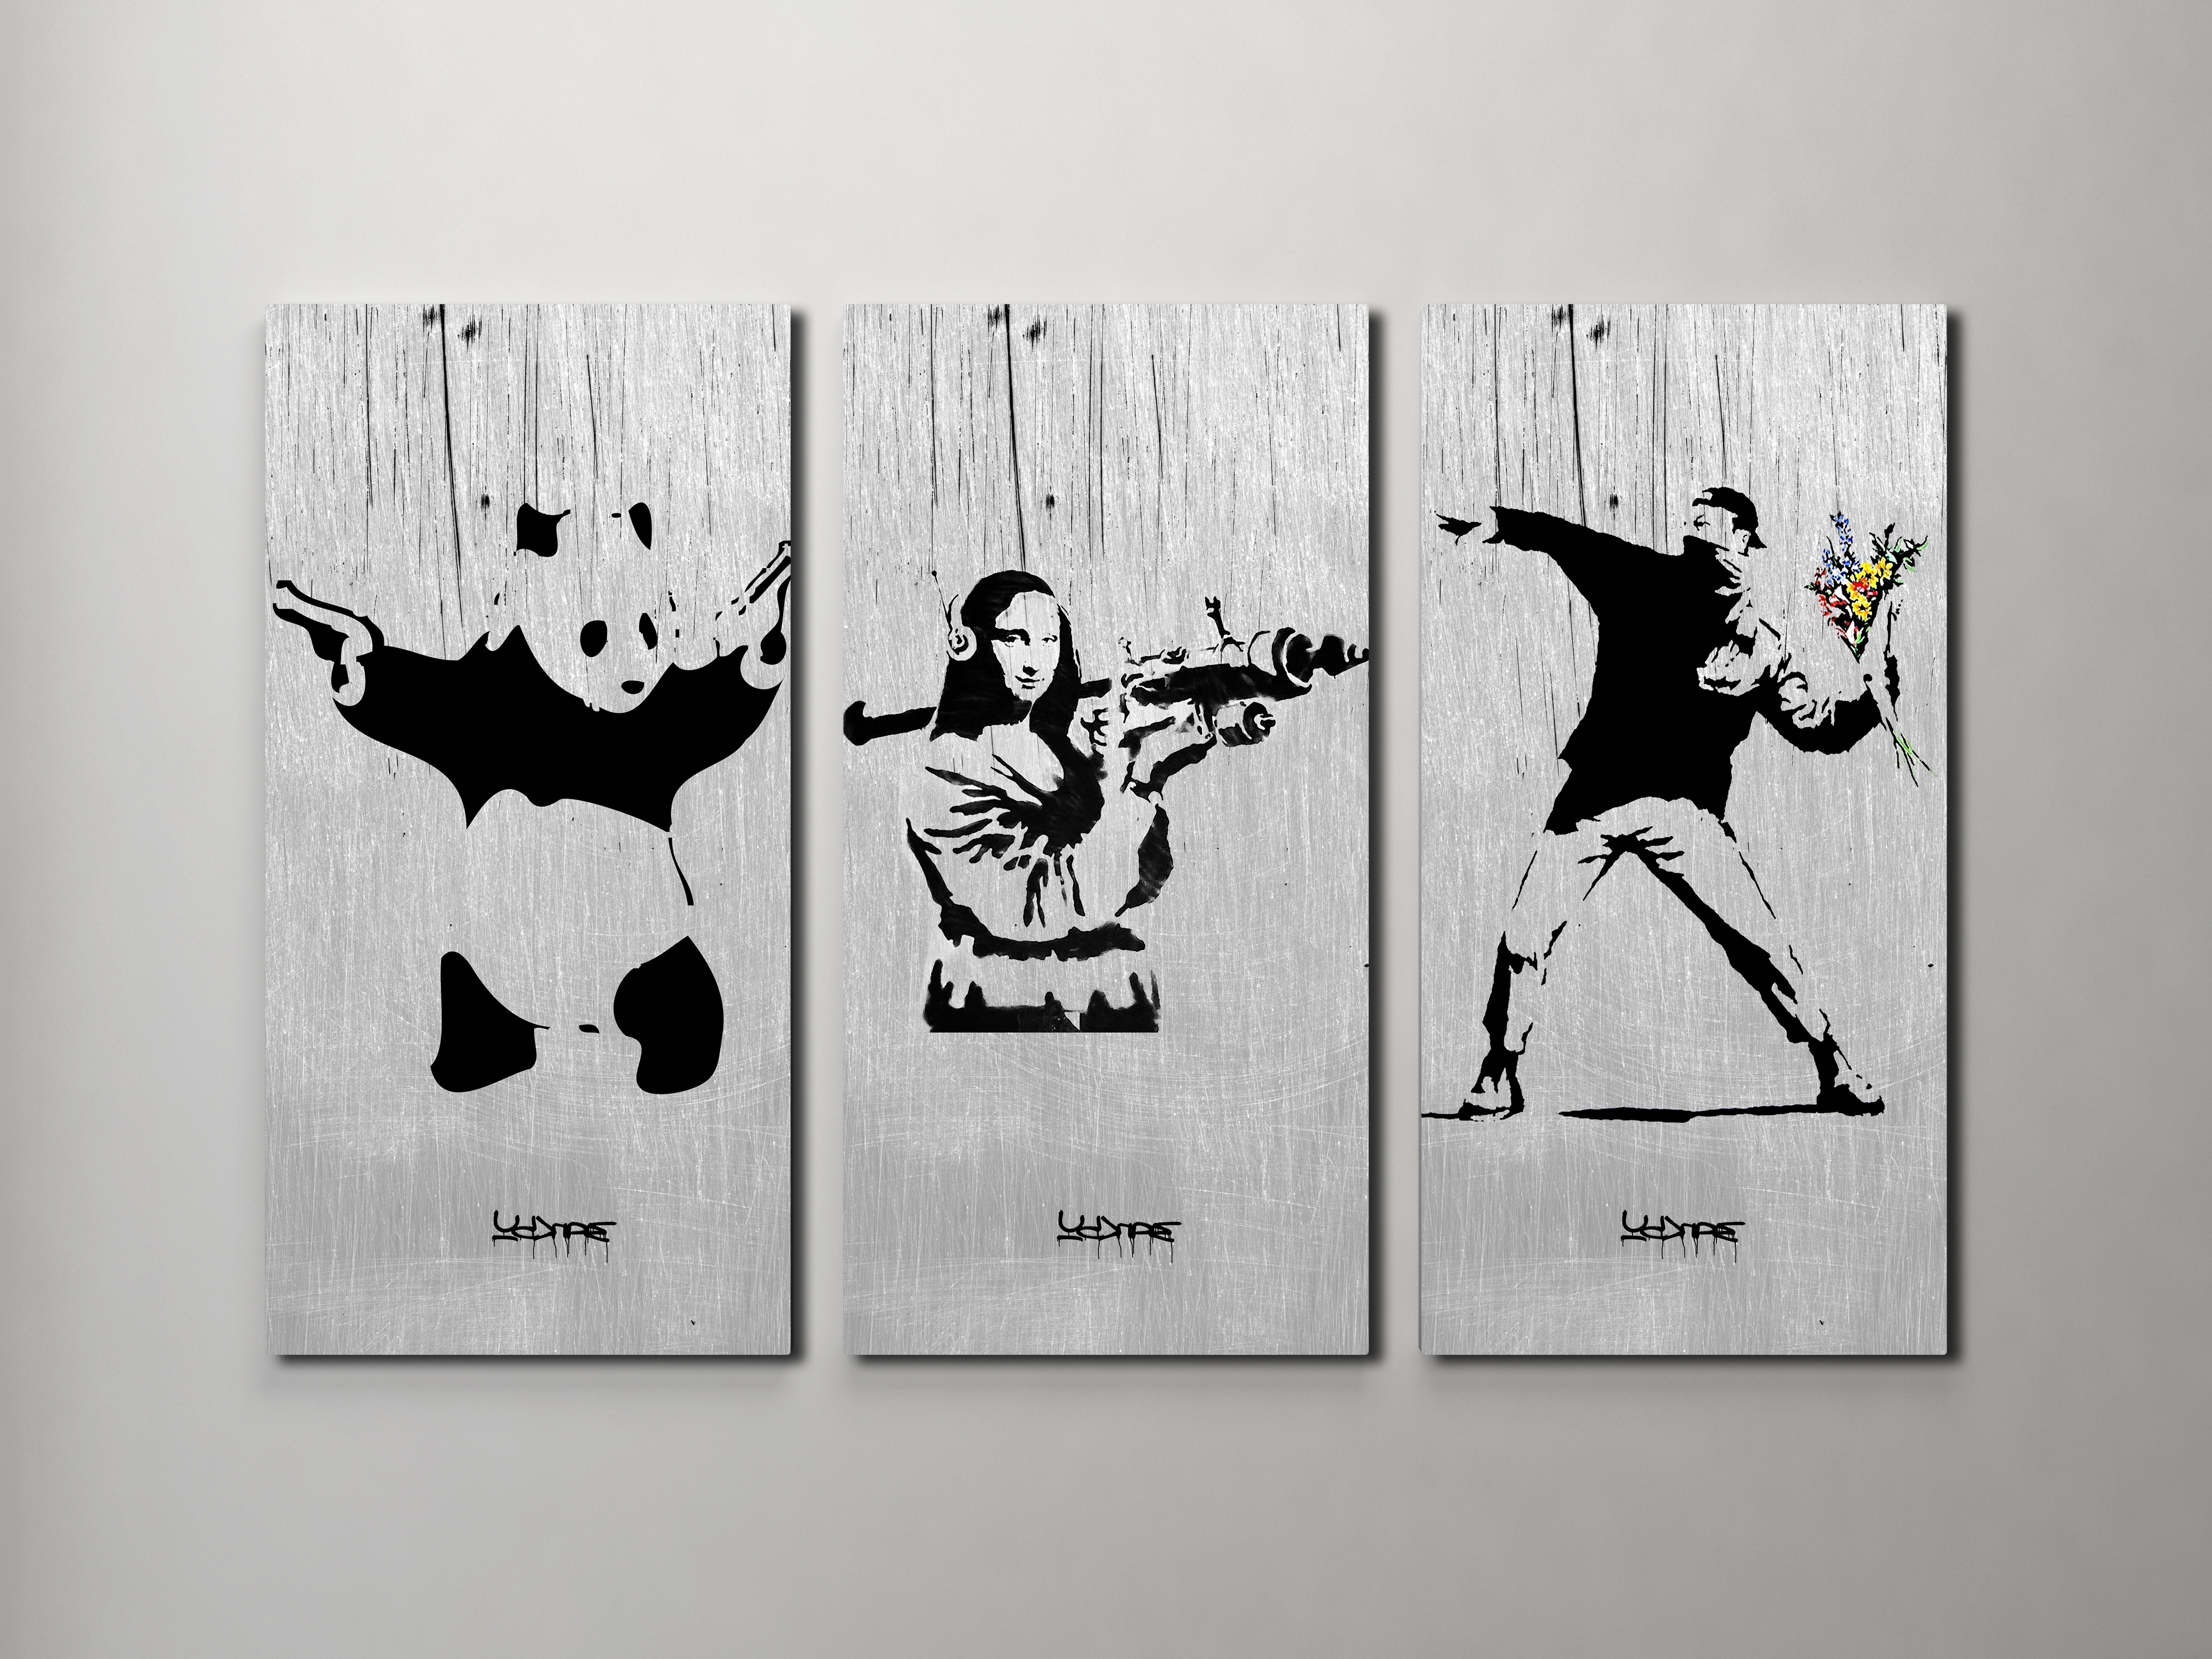 Banksy Canvas Wall Art Throughout Most Popular Banksy Flower Thrower, Mona Lisa, Panda Collage Triptych Canvas (View 9 of 15)